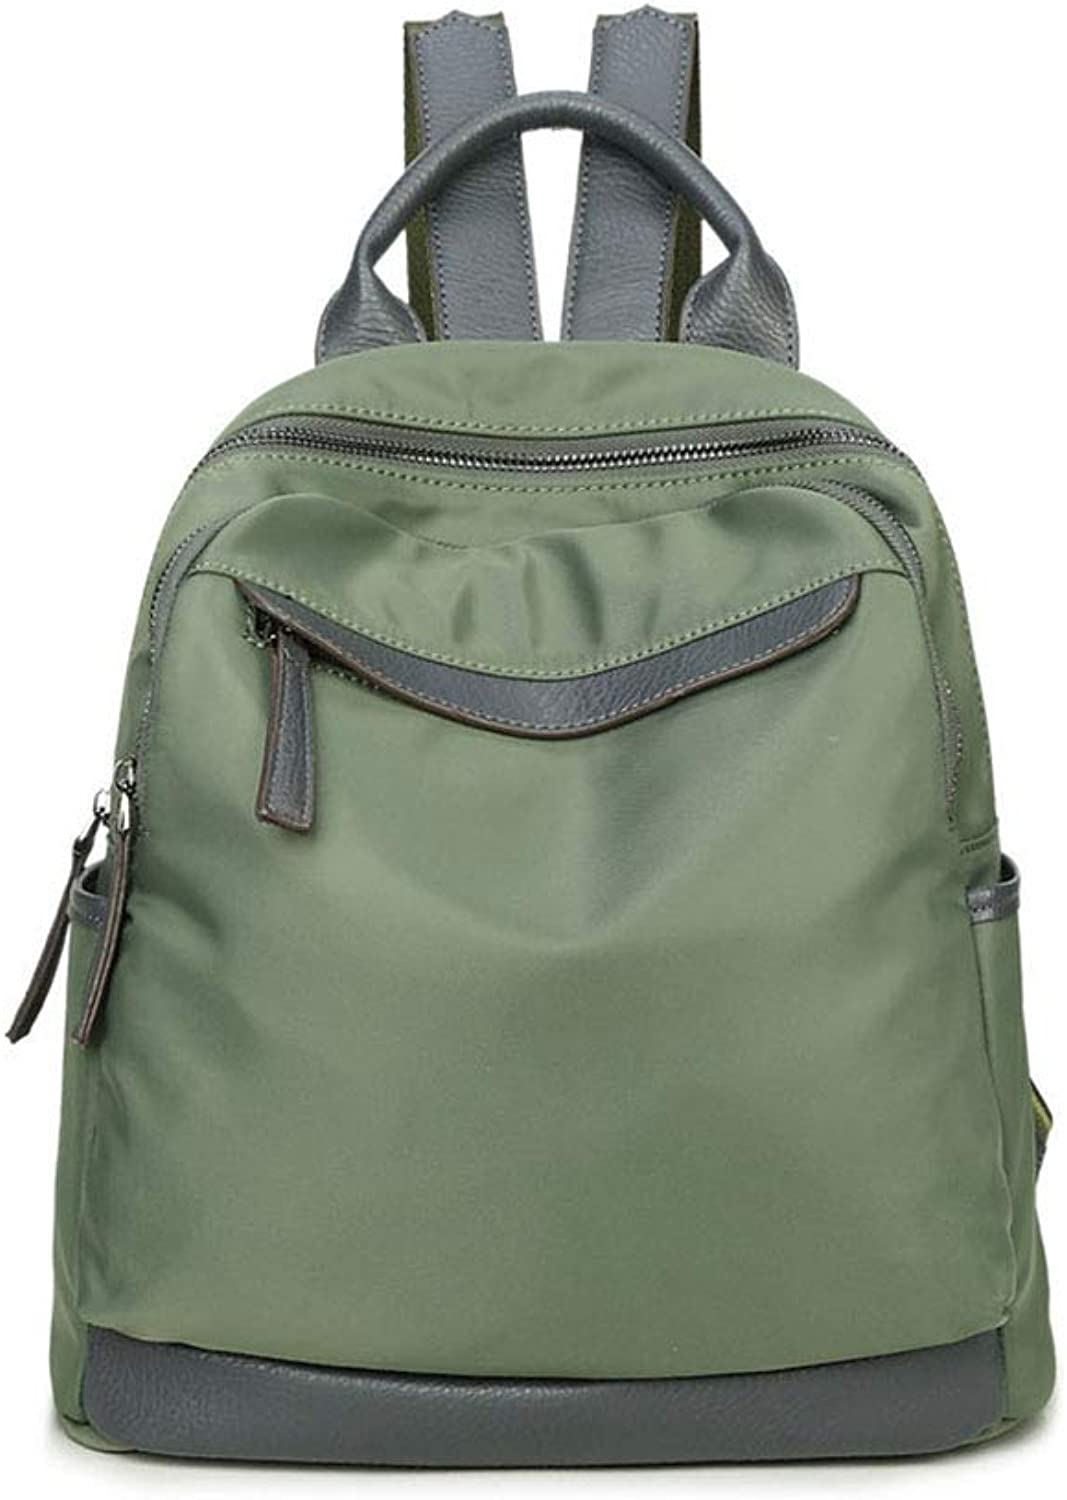 KIMSAI Stylish casual lightweight rucksack Simple student bag Laptop bag Large capacity backpack Travel package Leisure mountaineering bag Light outdoor,Green,30  14  30CM